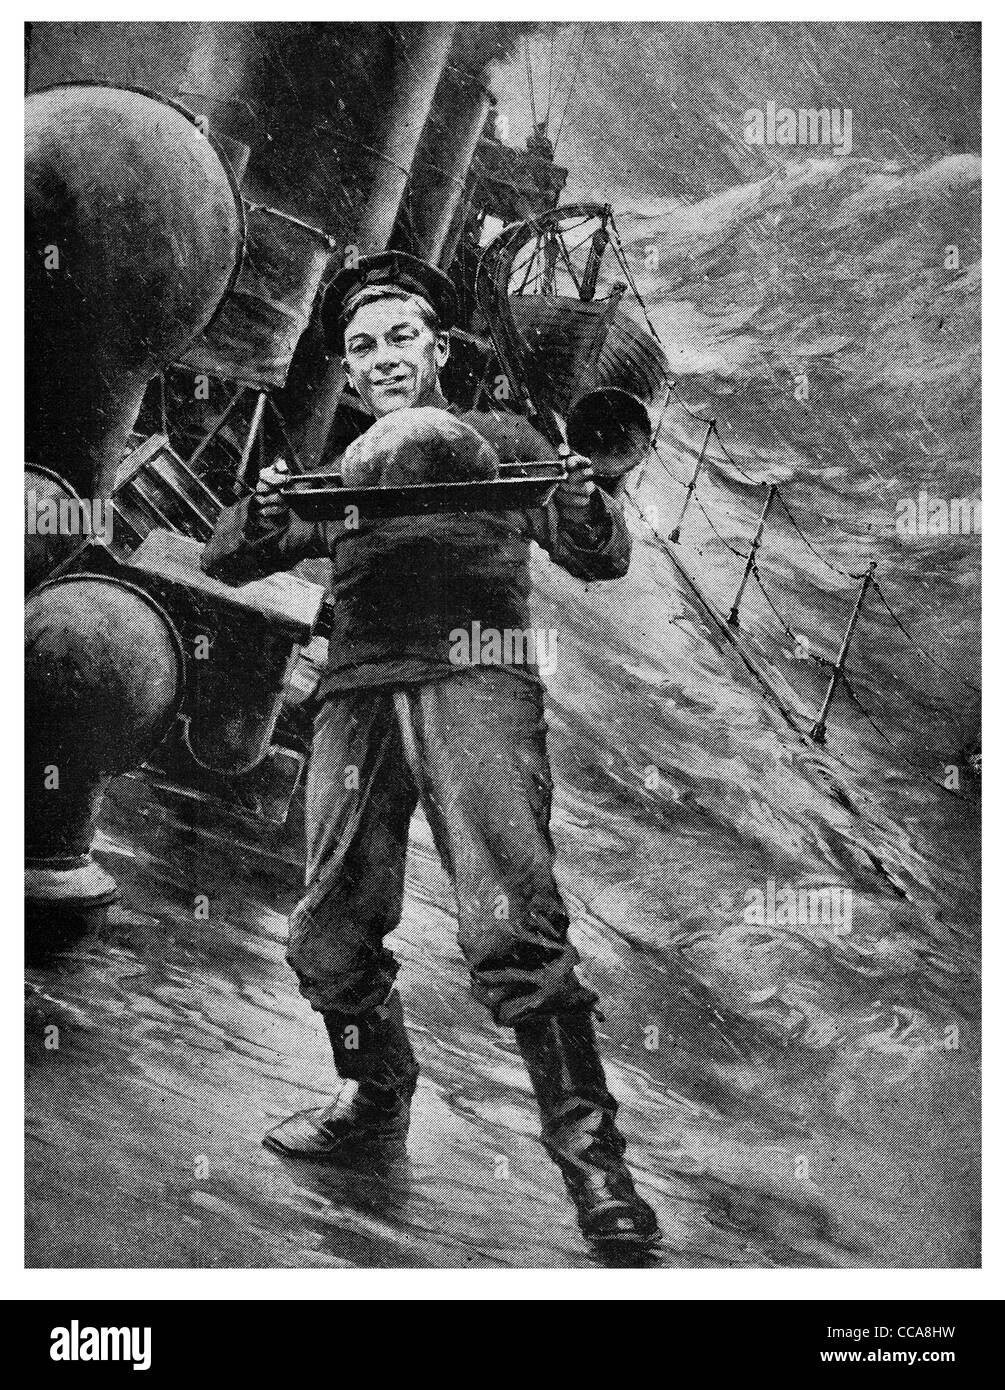 1916 British Navy sailor carrying Christmas pudding storm dessert winter storm crashing wave waves steamer steam - Stock Image